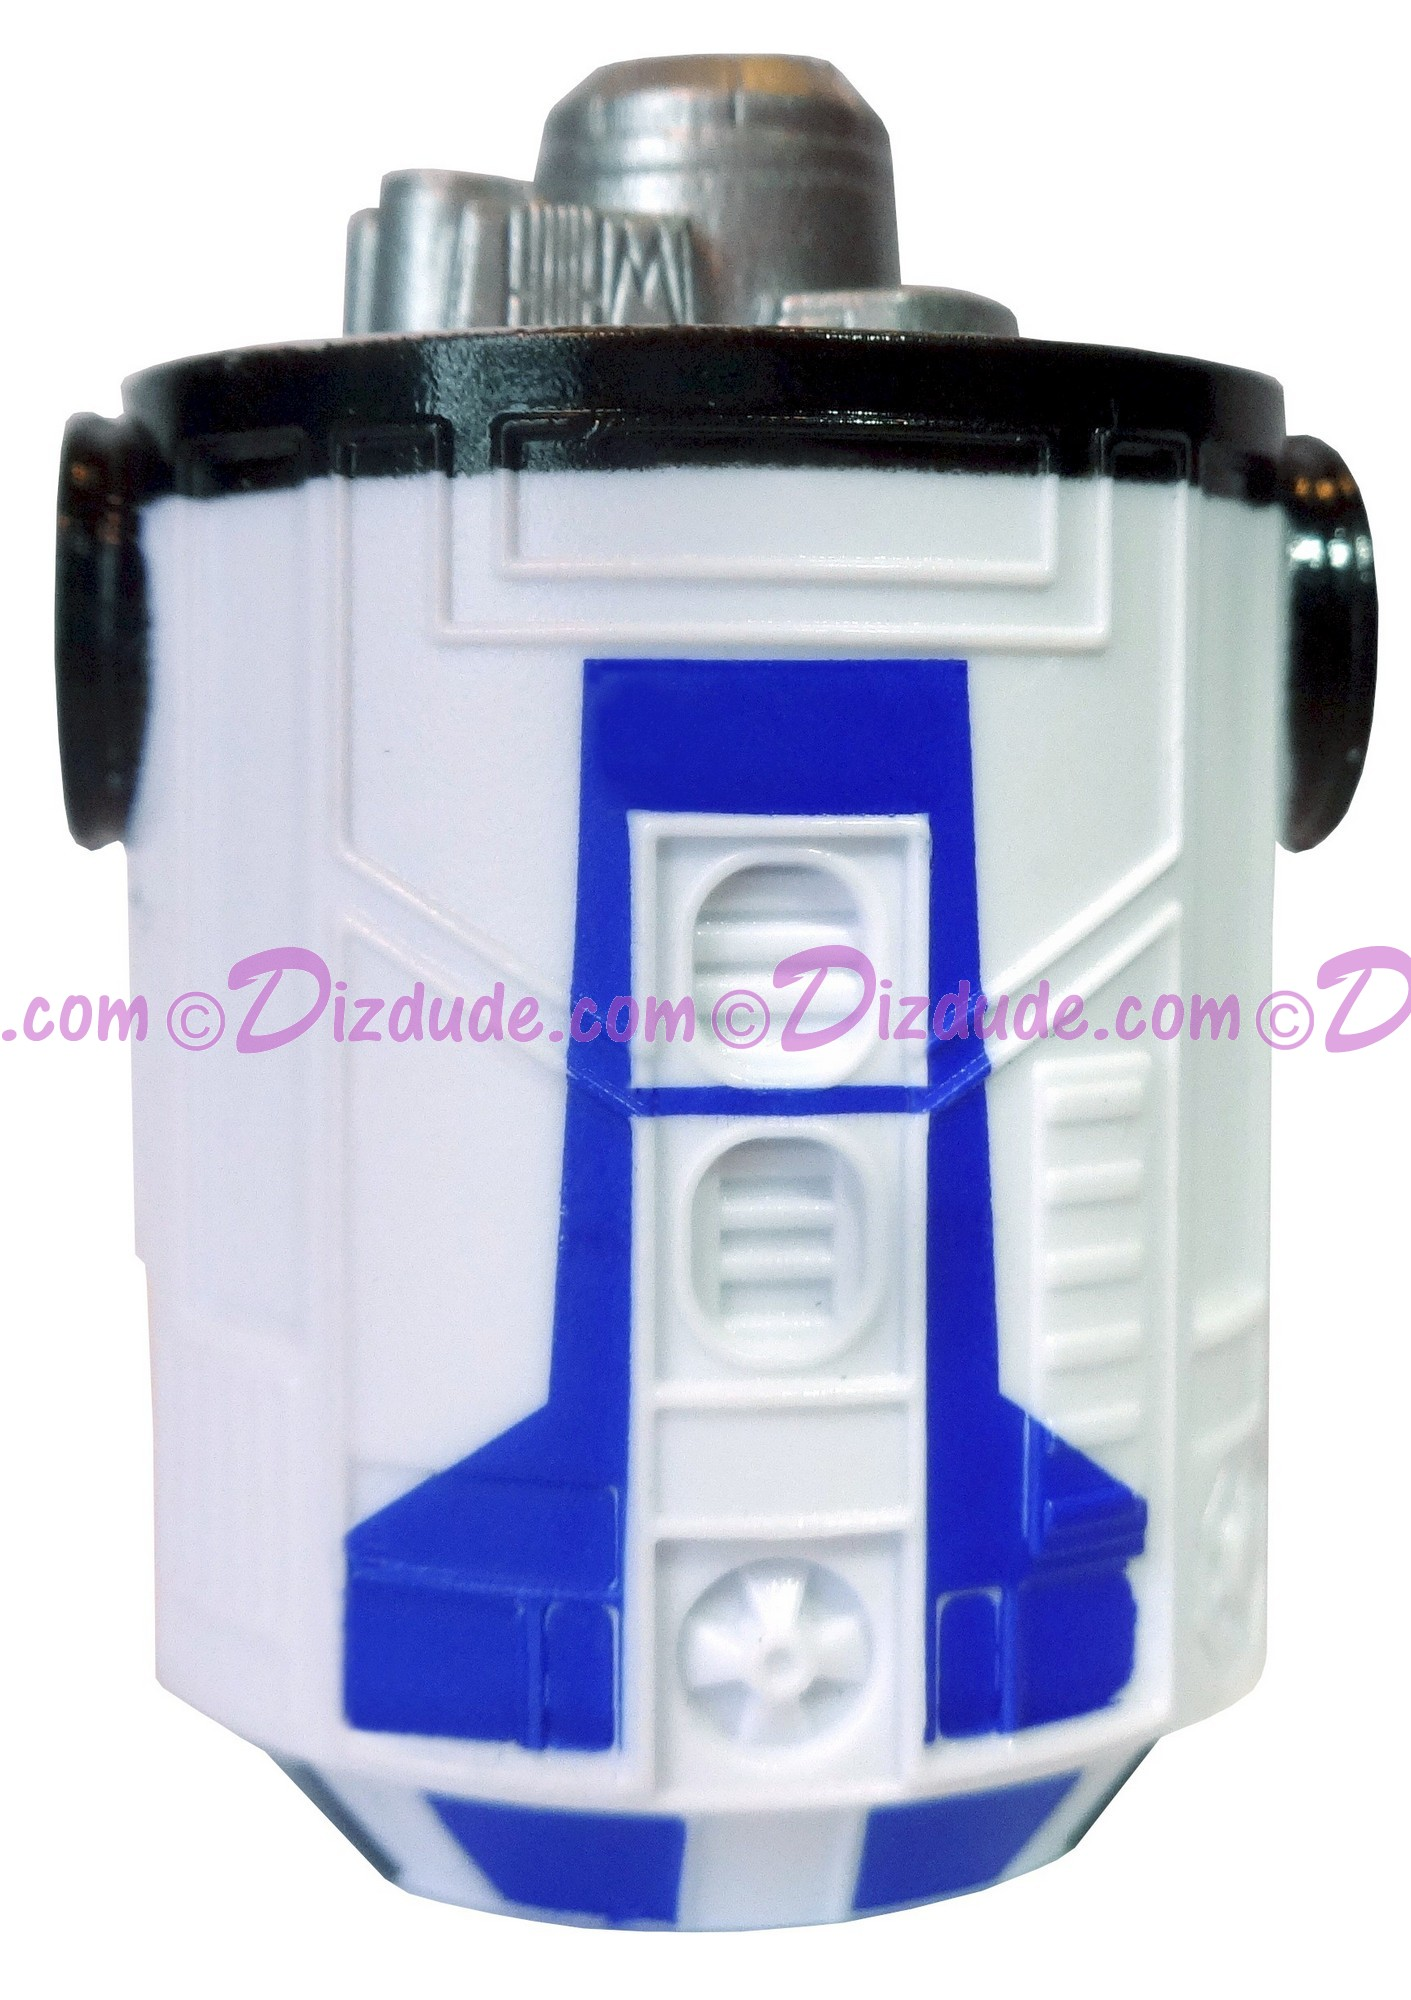 White - Blue & Black  Astromech Droid Body ~ Series 2 from Disney Star Wars Build-A-Droid Factory © Dizdude.com